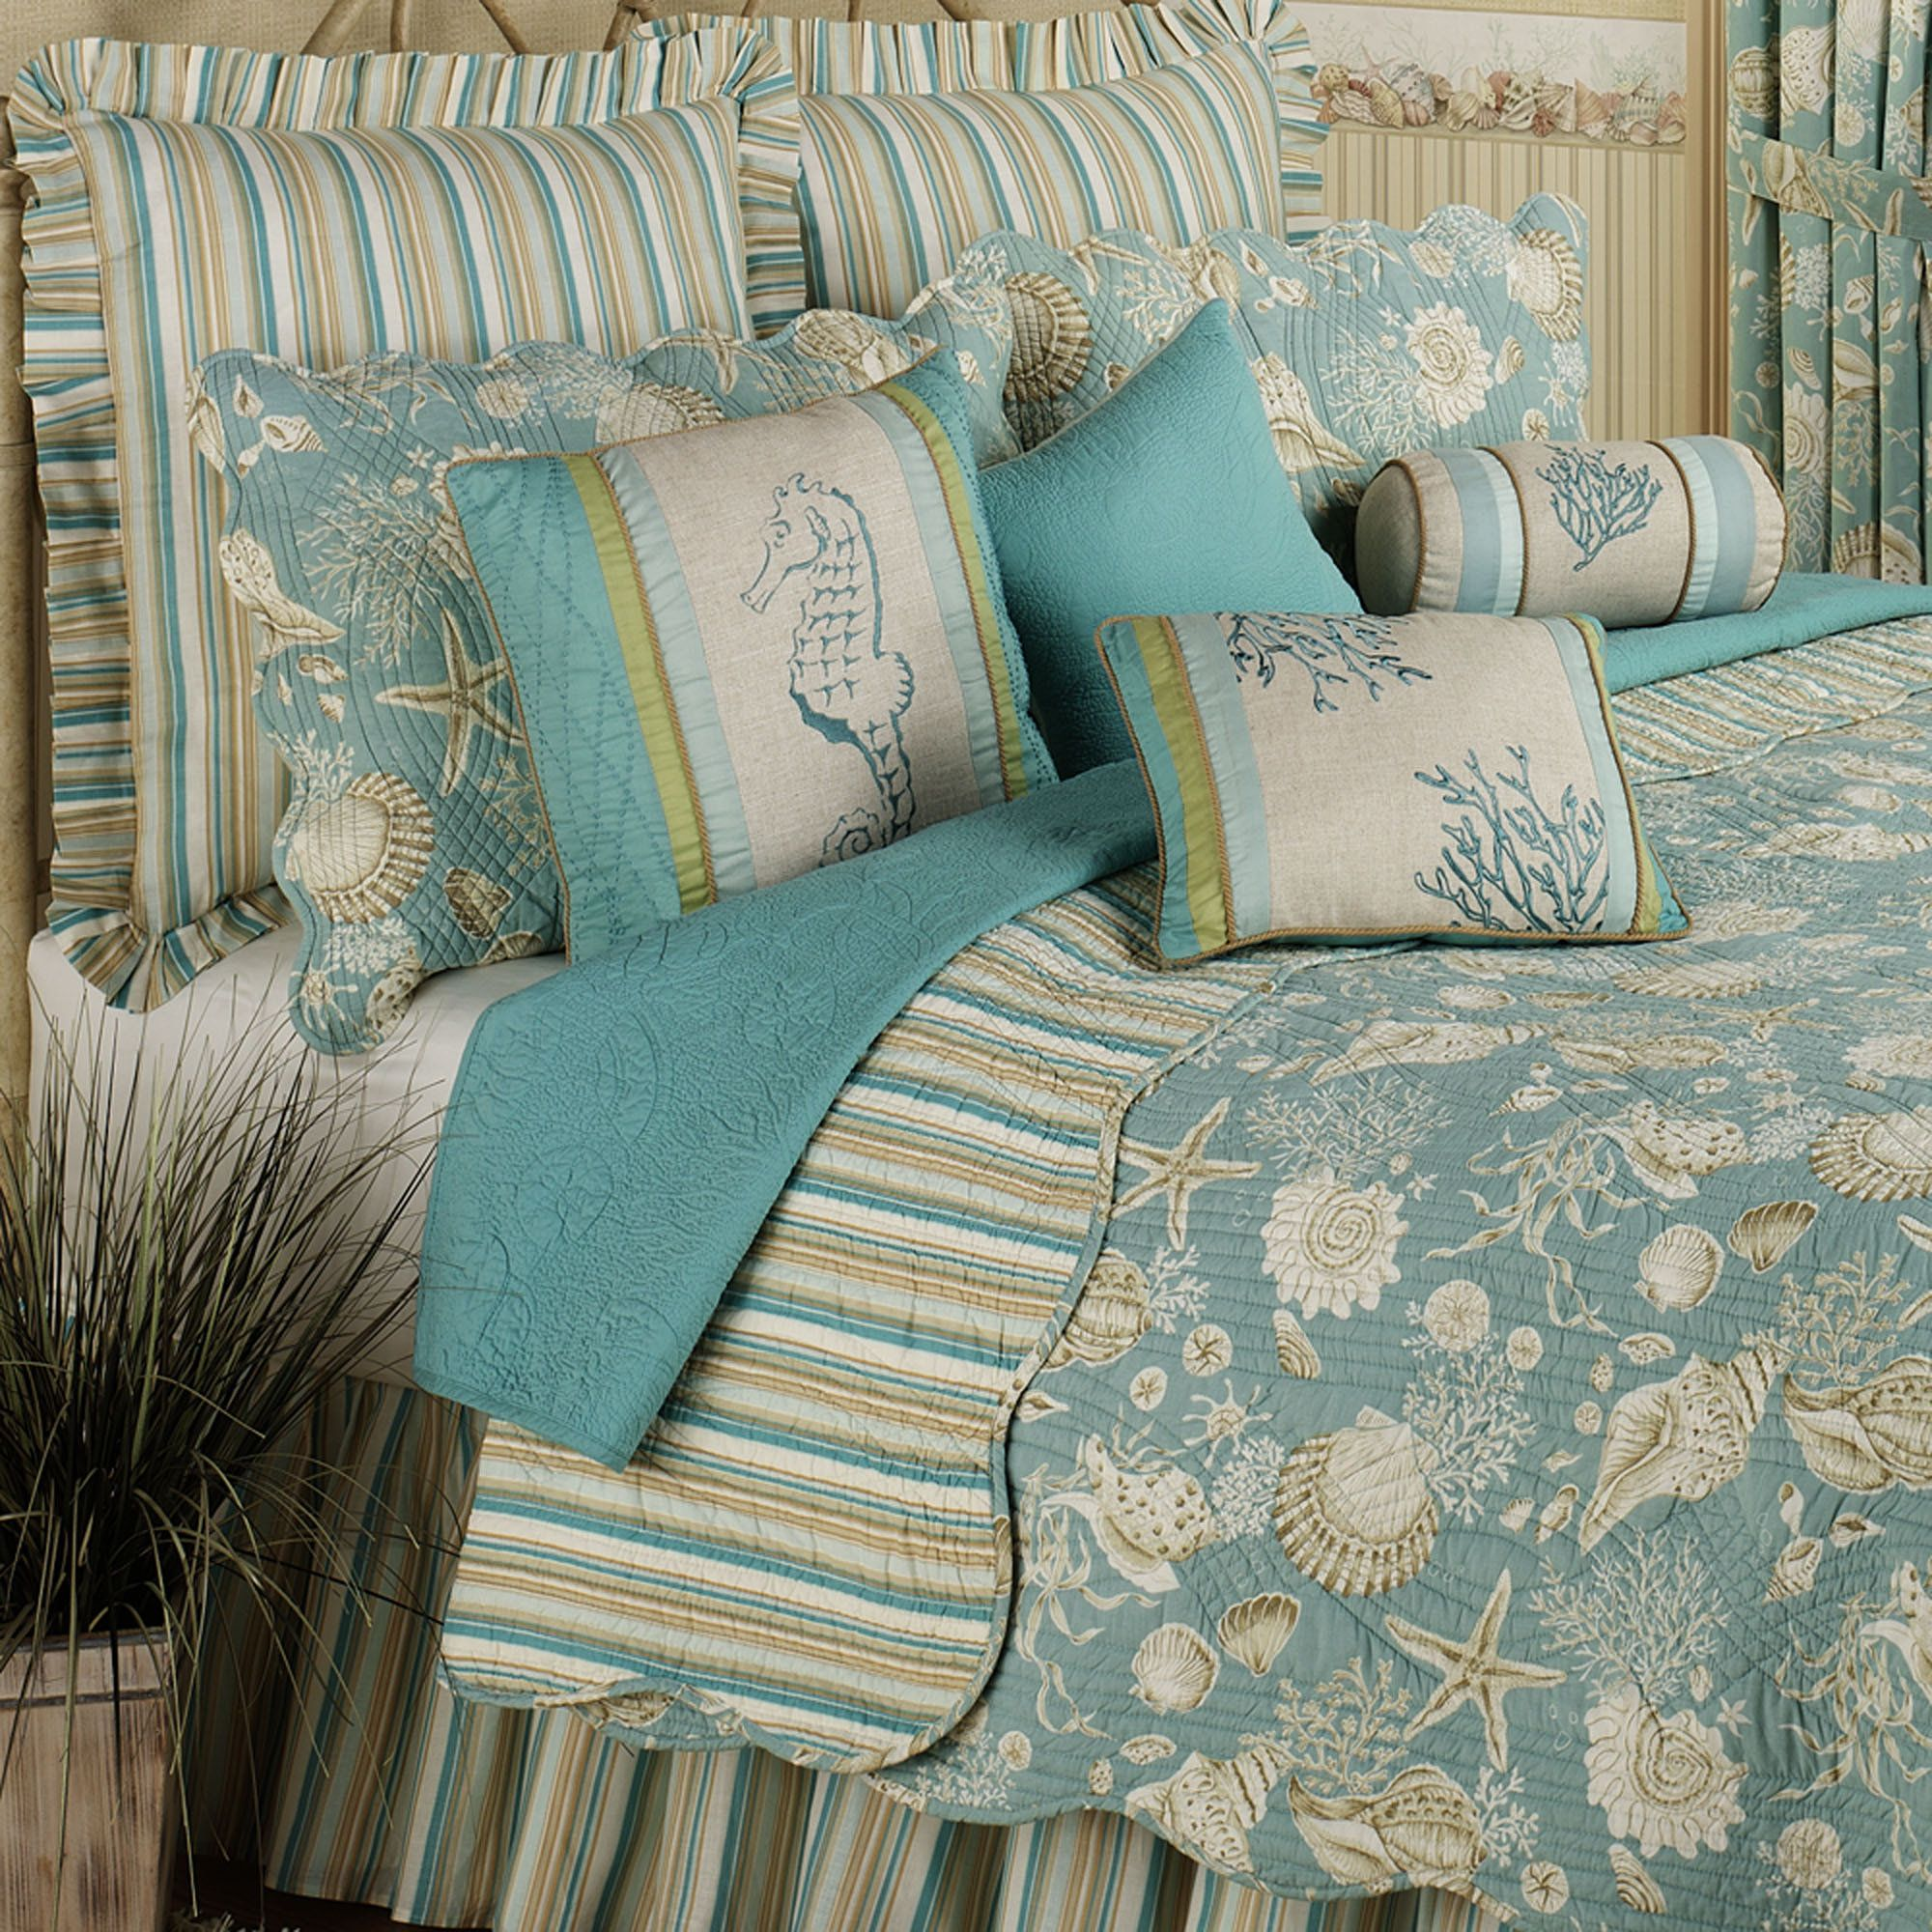 duvet size covers southwest comforter cover nautical set duvets native will linen full comforters fishinghemed avid southwestern quilt lovehis taupe bedding elegant this style every sets decor bedroom queen print beach cedar inspired love of coastal bathroom angler clearance decorfishing aztec themed